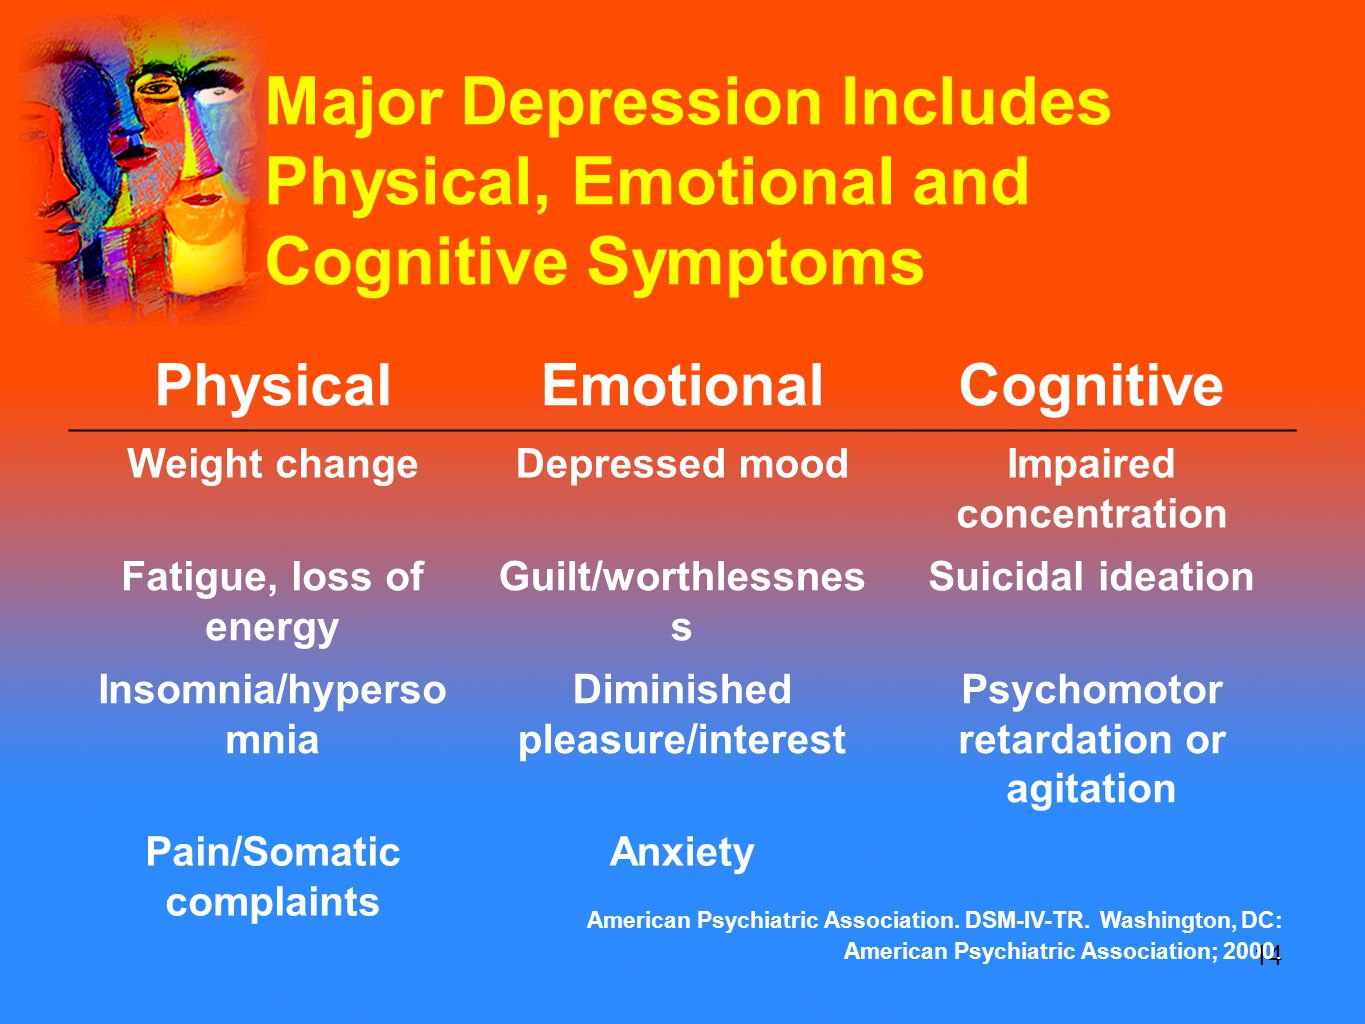 14 Major Depression Includes Physical, Emotional and Cognitive Symptoms PhysicalEmotionalCognitive Weight changeDepressed moodImpaired concentration Fatigue, loss of energy Guilt/worthlessnes s Suicidal ideation Insomnia/hyperso mnia Diminished pleasure/interest Psychomotor retardation or agitation Pain/Somatic complaints Anxiety American Psychiatric Association.